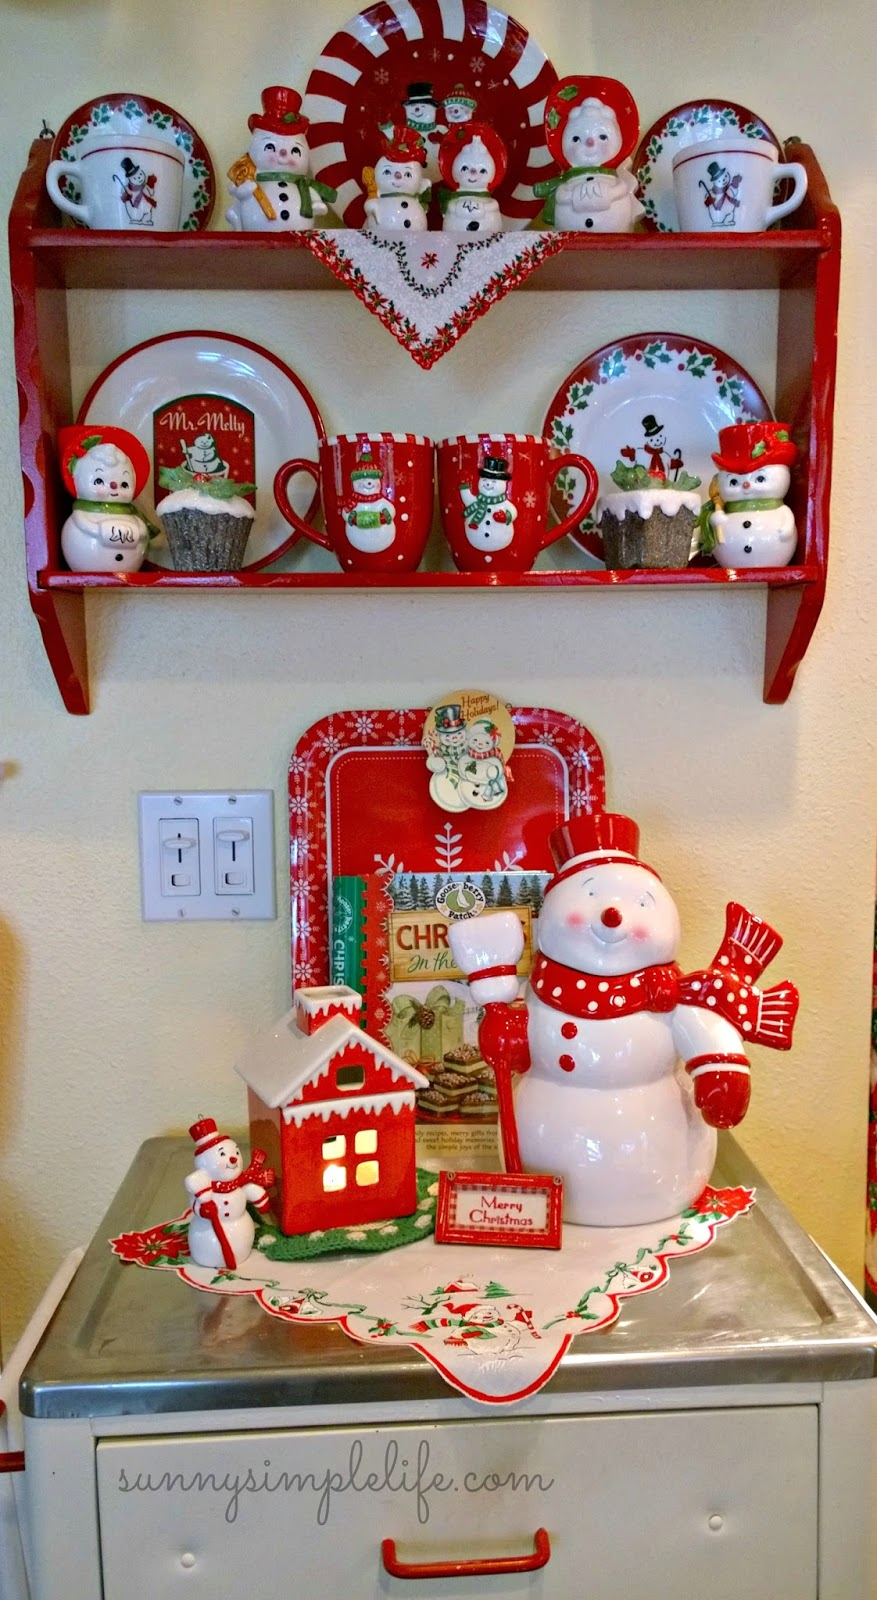 Christmas shelf, Cozy Christmas decor, snowman collection